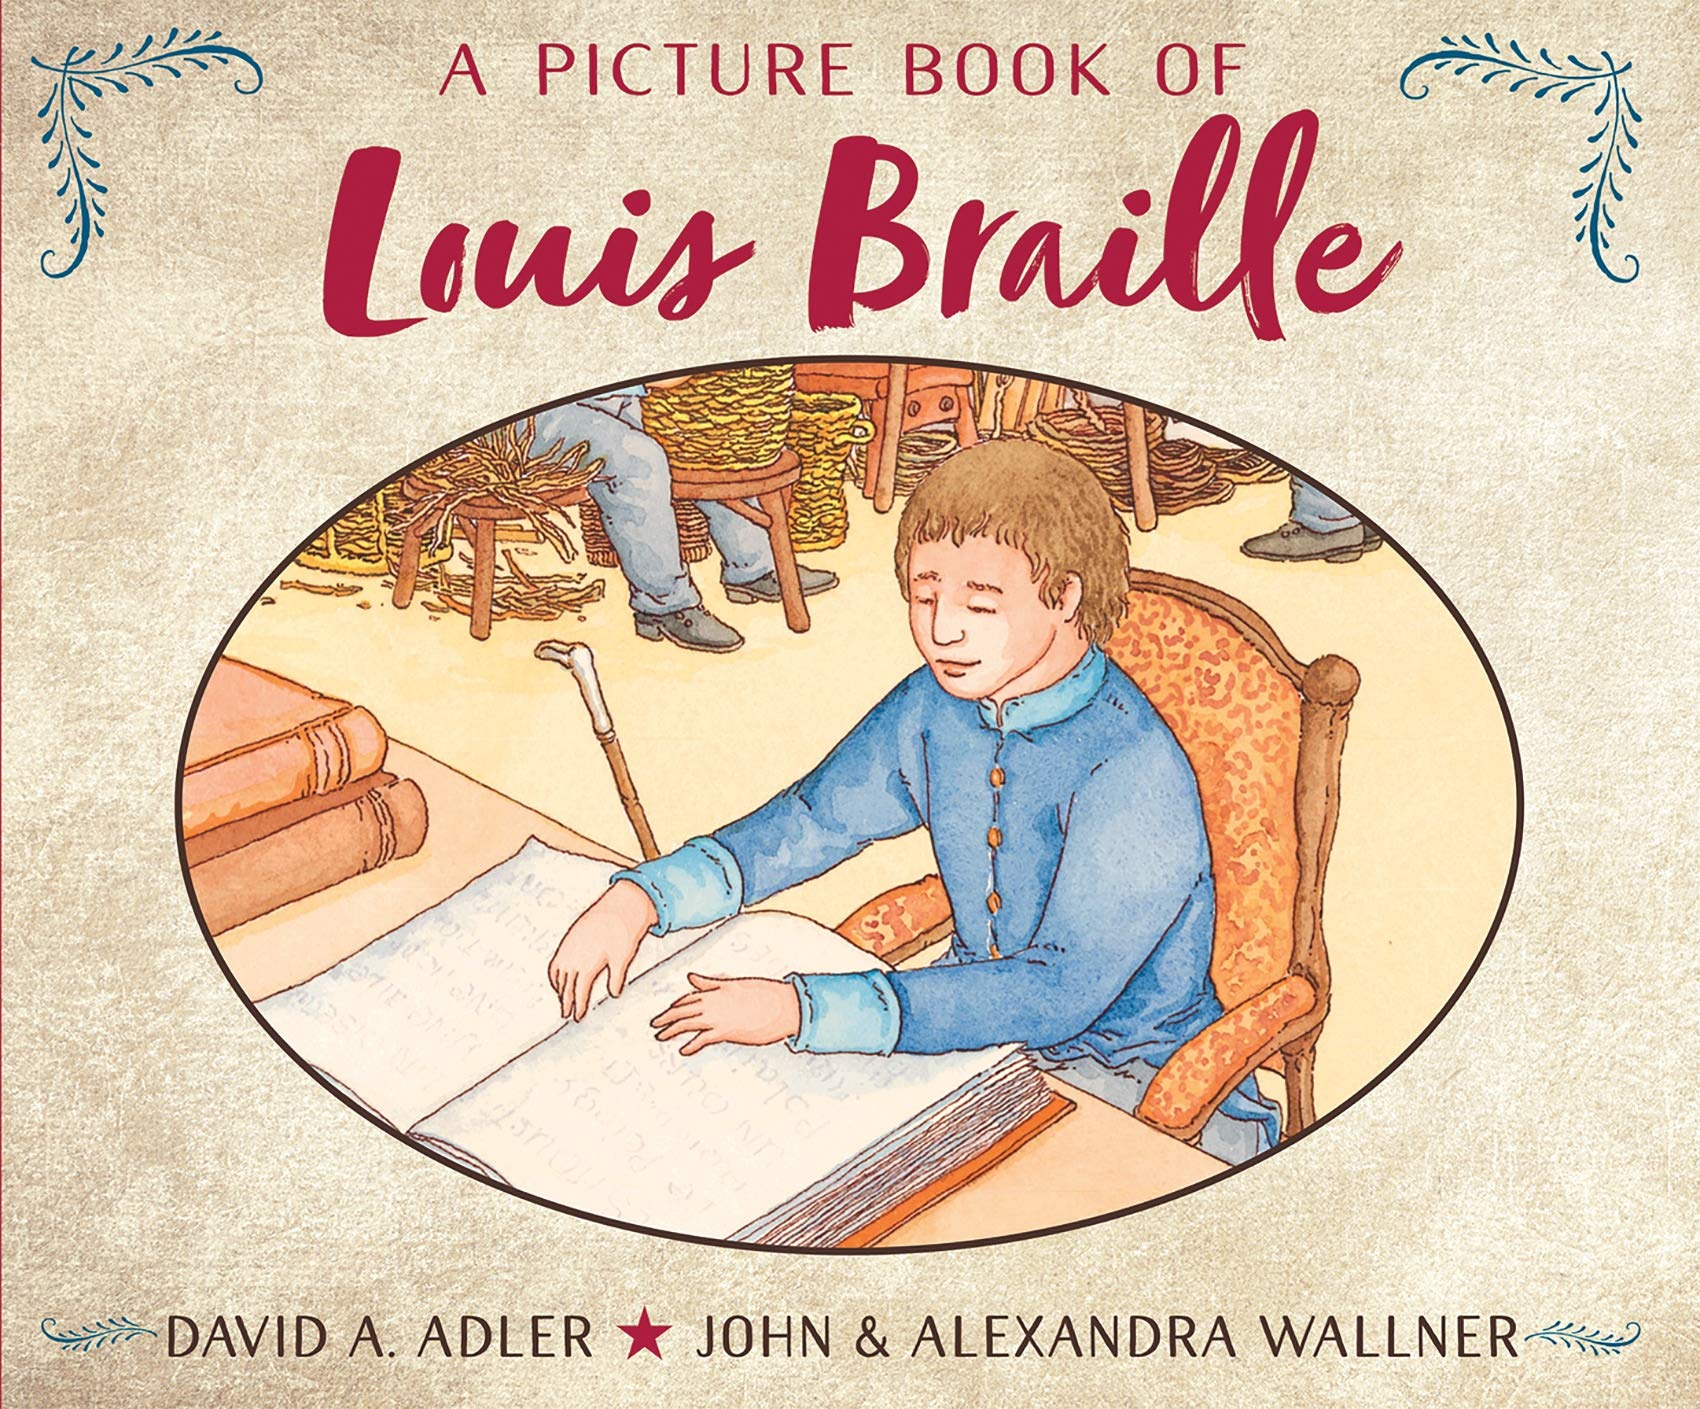 Picture Book of Louis Braille, A (Picture Book Biography): Amazon.co.uk:  Adler, A., David: 9780823444571: Books